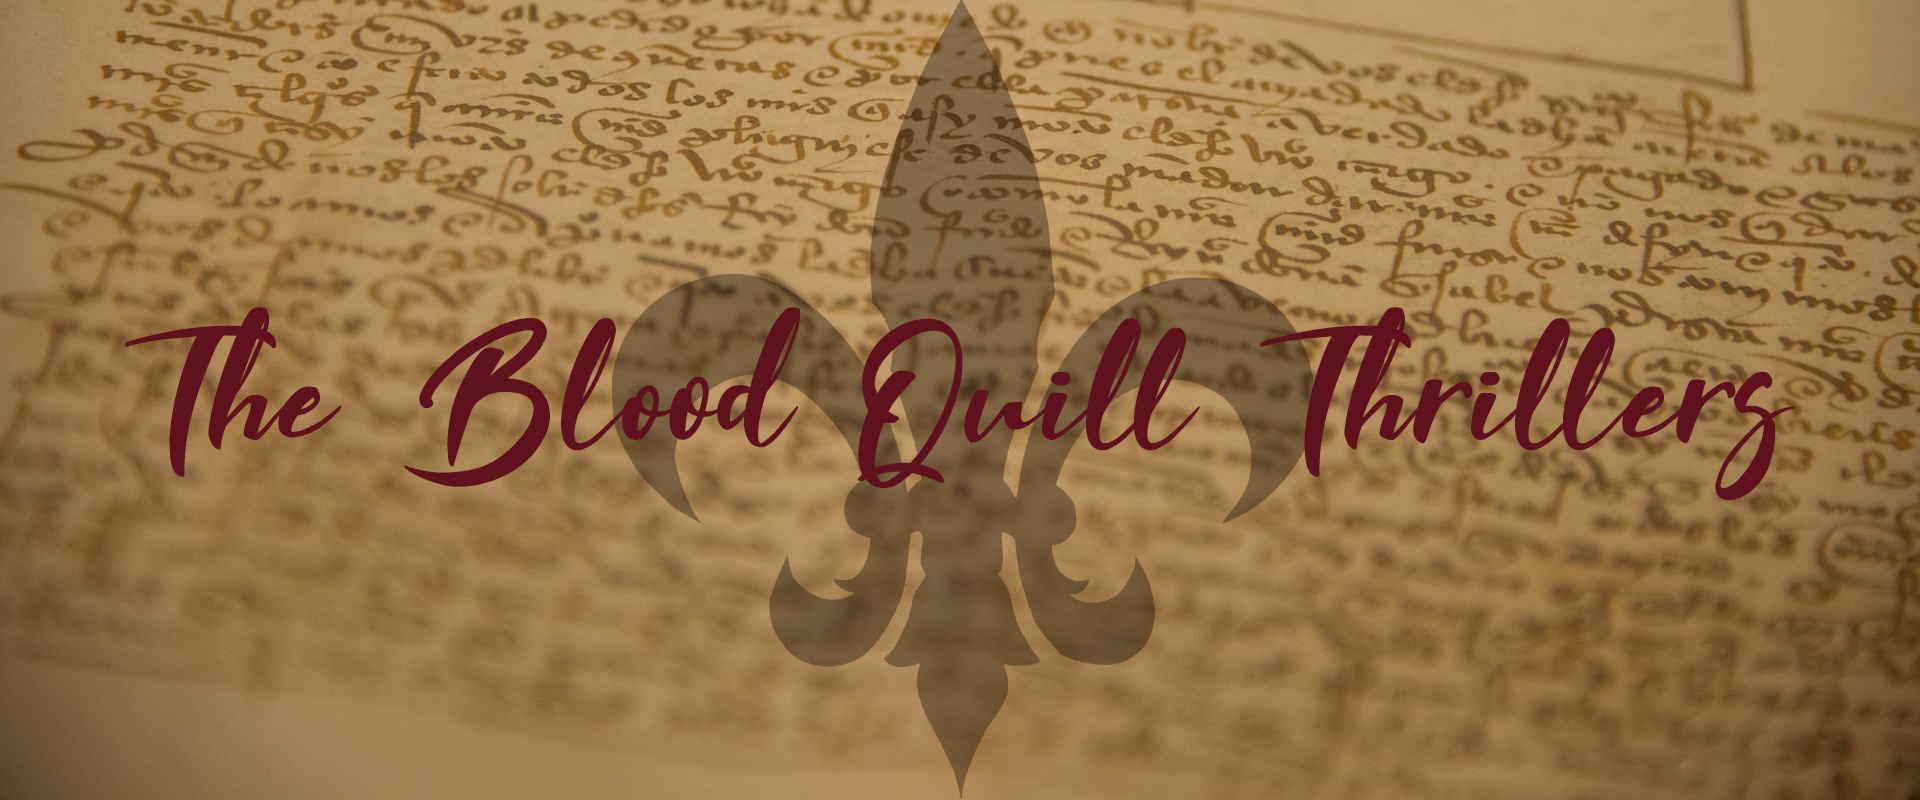 The Blood Quill Thrillers Banner